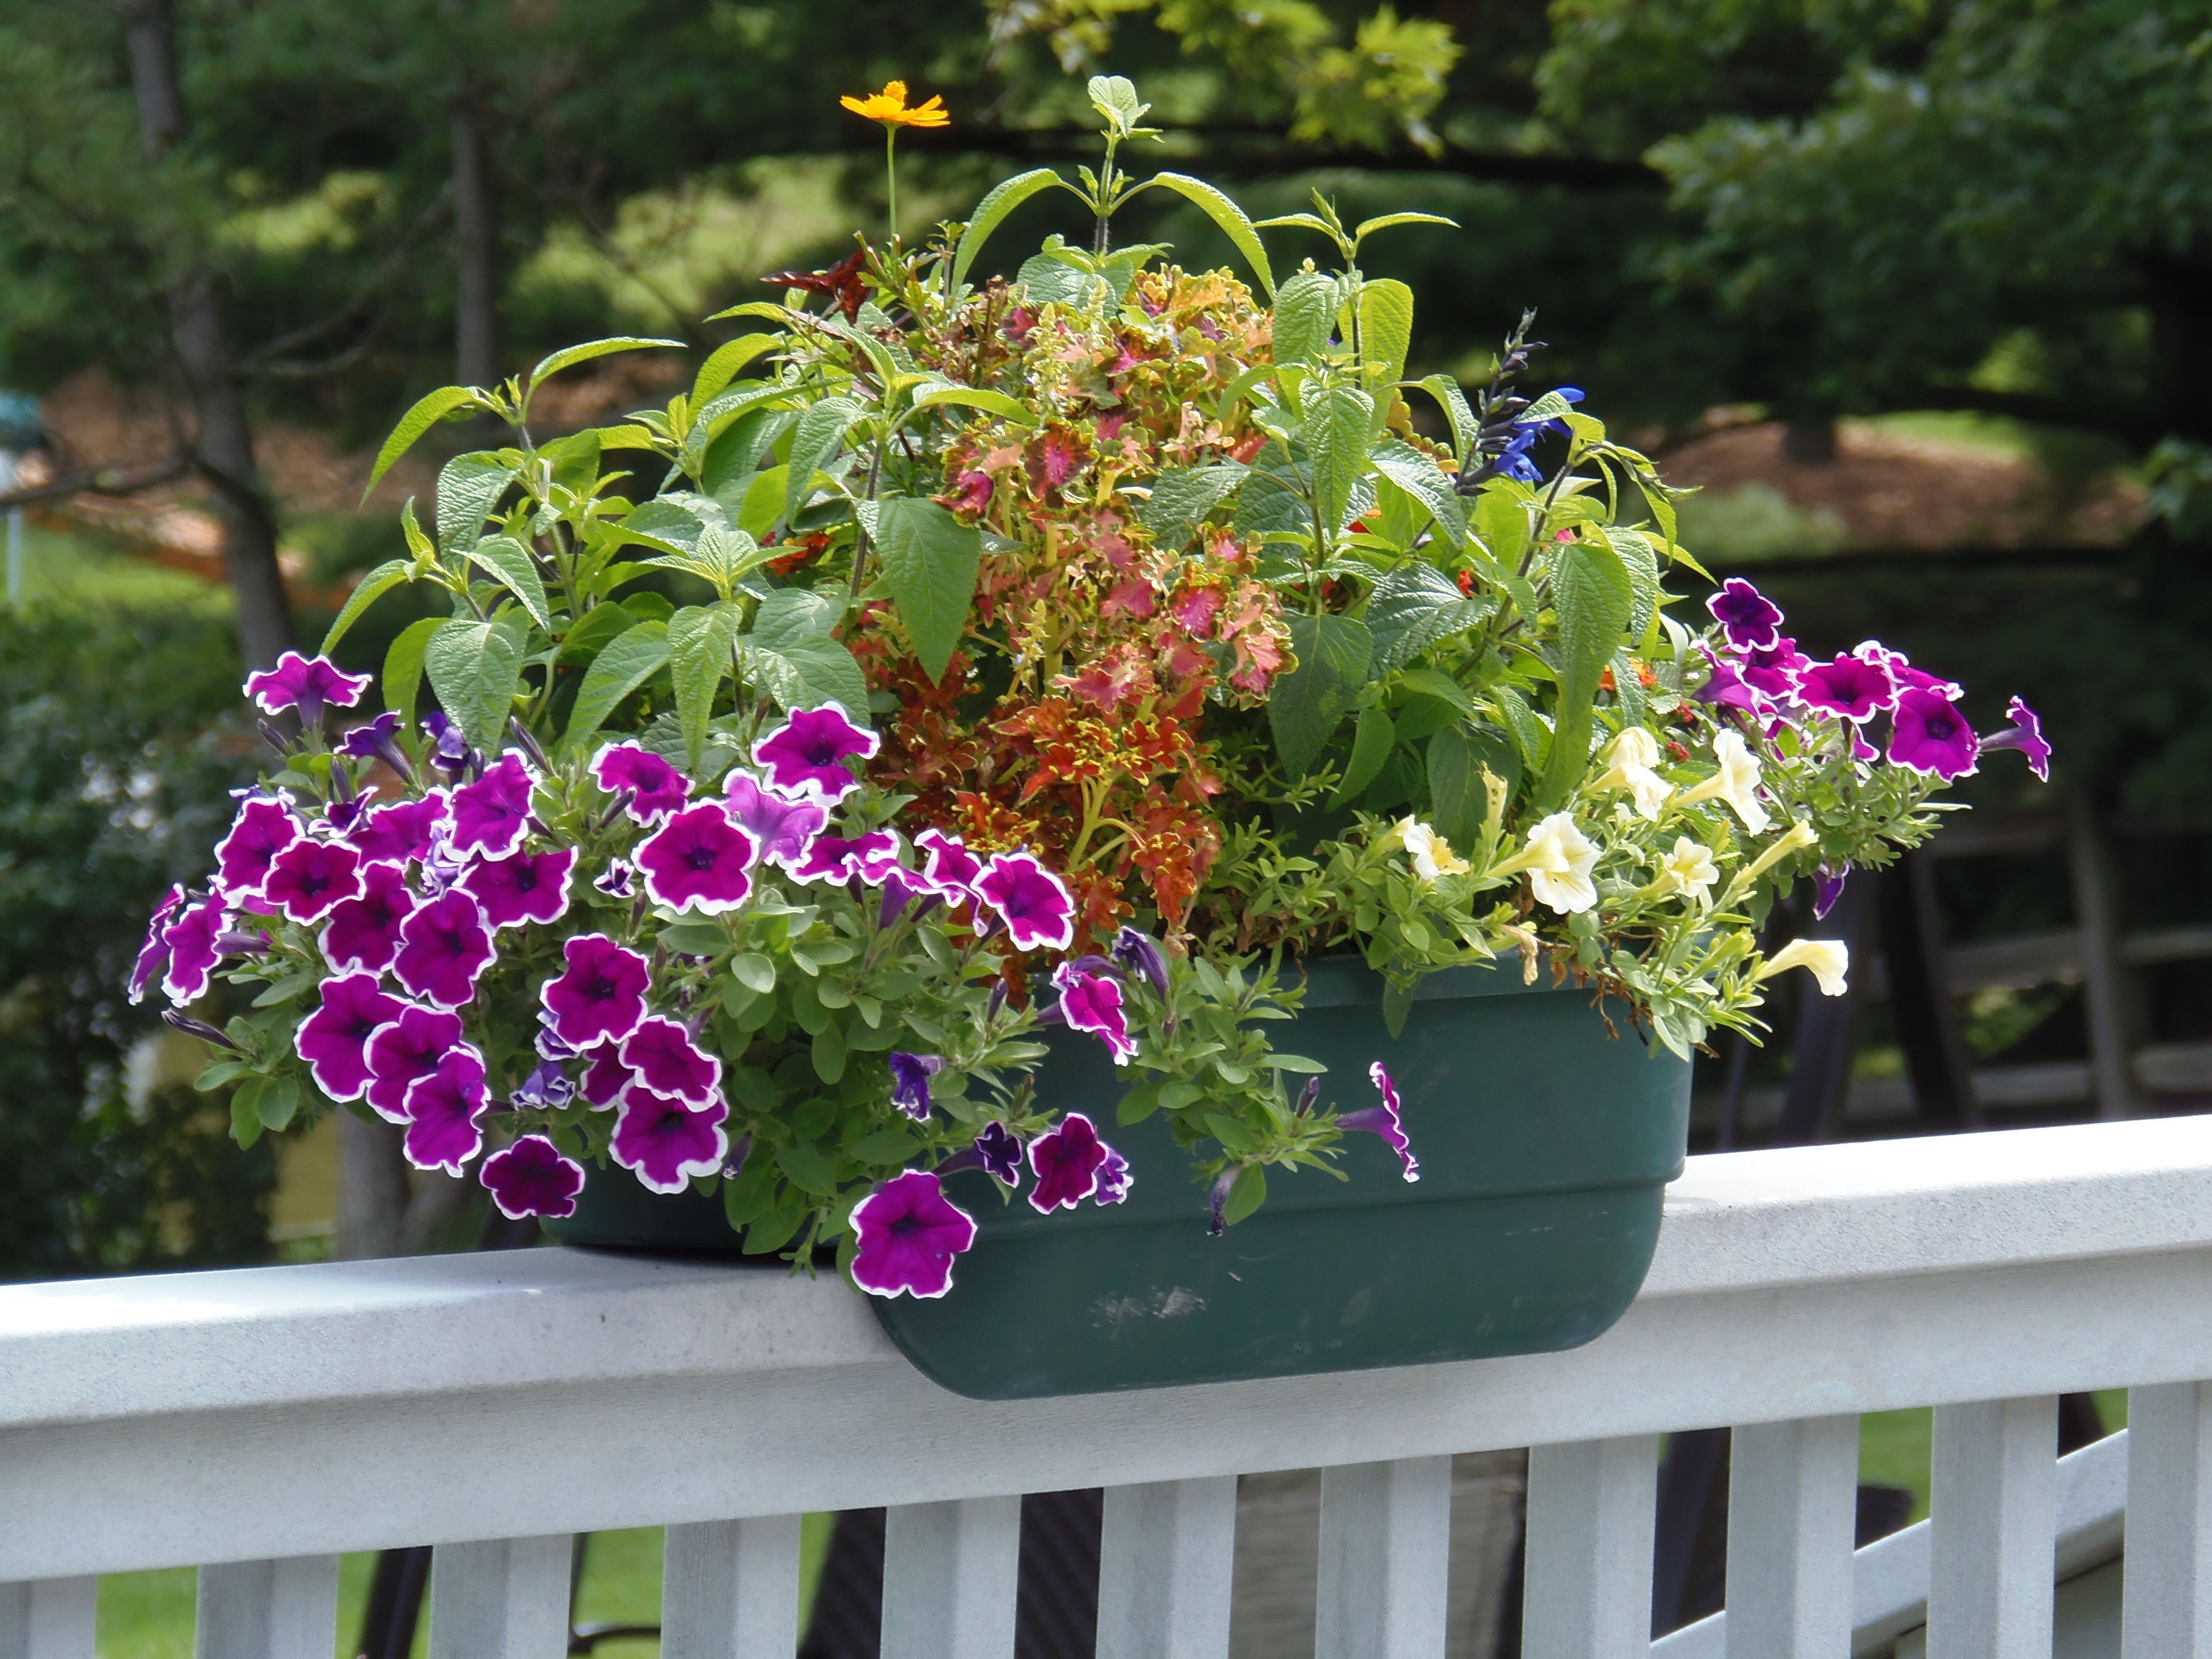 rail get adjustable quotations planter large planters deck railing bracket flower amp depot house box set of a with home